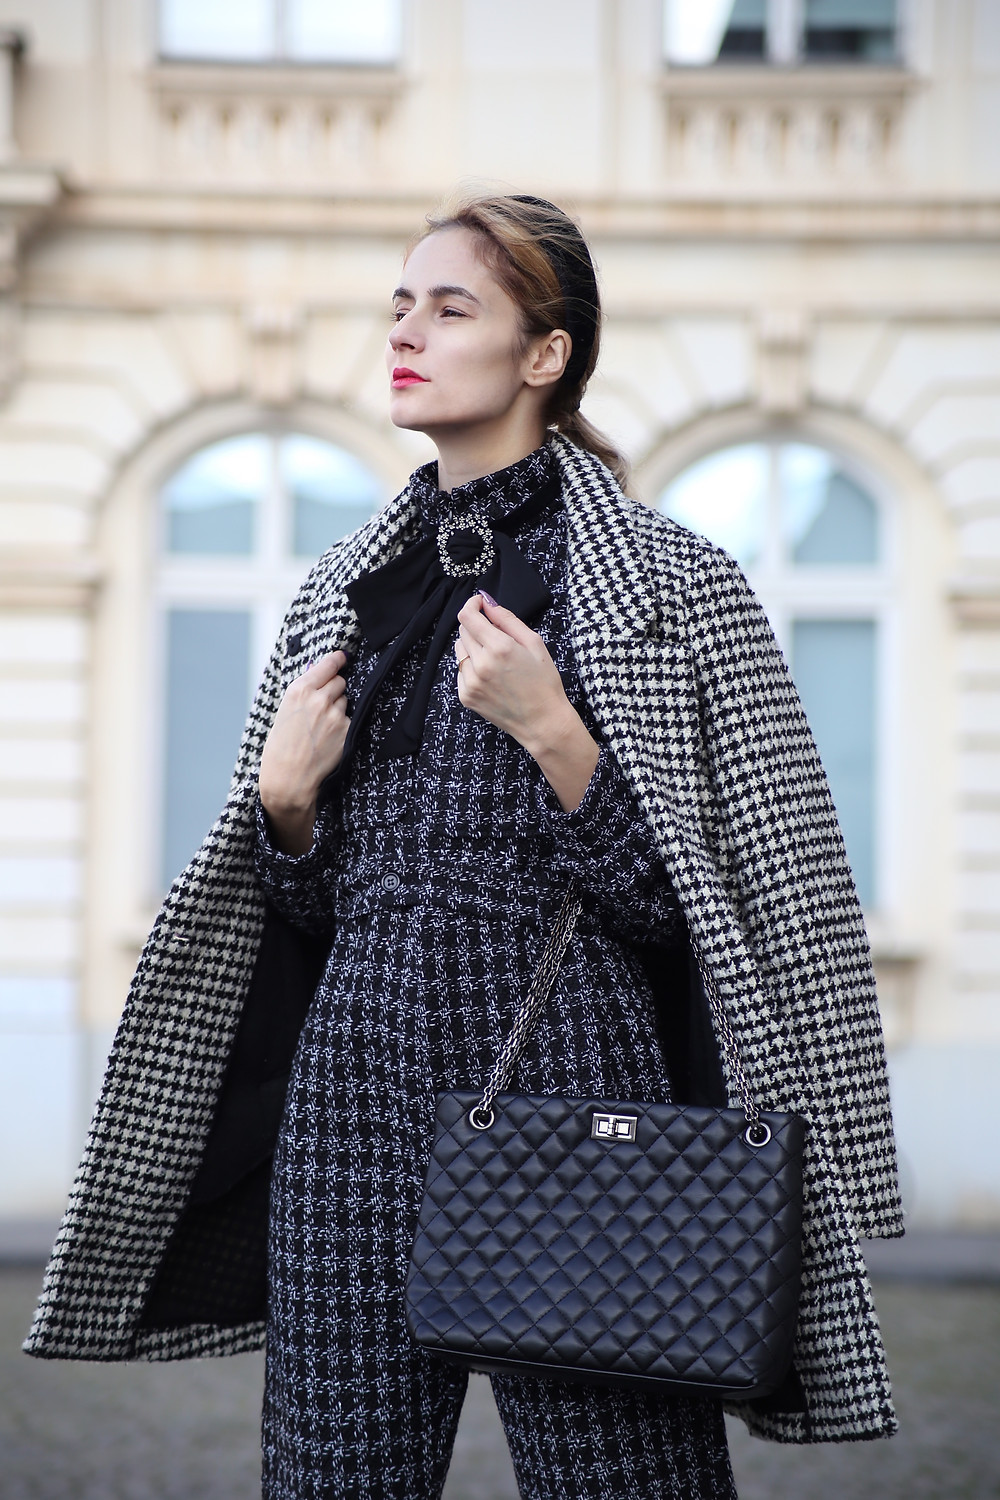 inspired-chanel-tweed-look.jpg